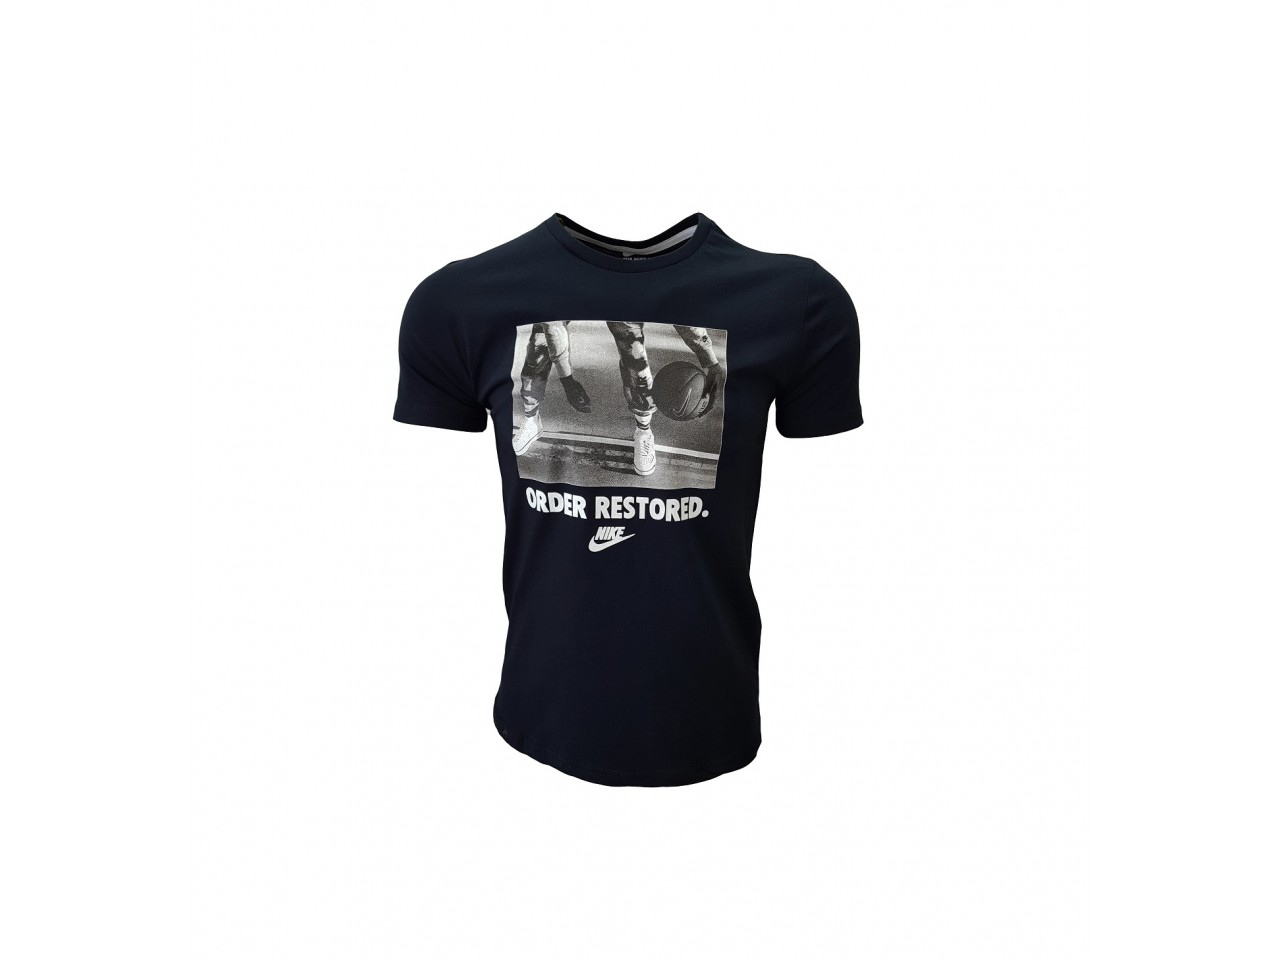 Nike T-Shirt Order Restored Dark Blue